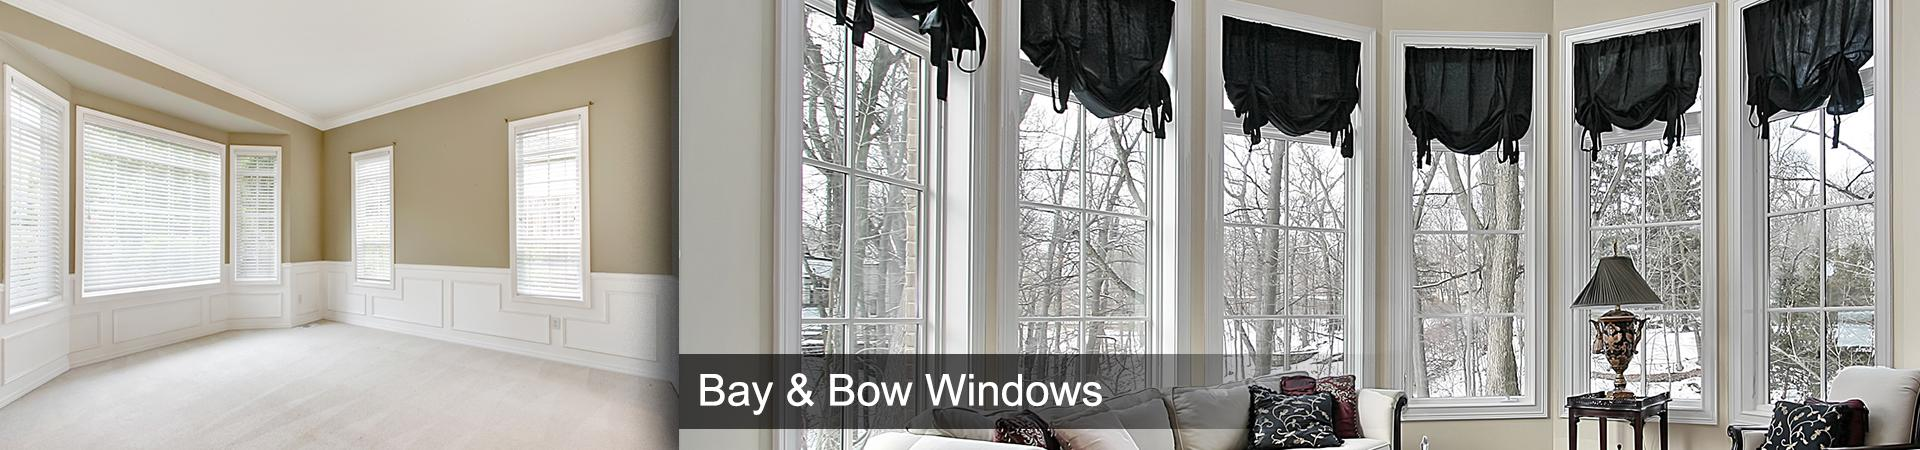 bay bow window replacement in raleigh durham north carolina menu